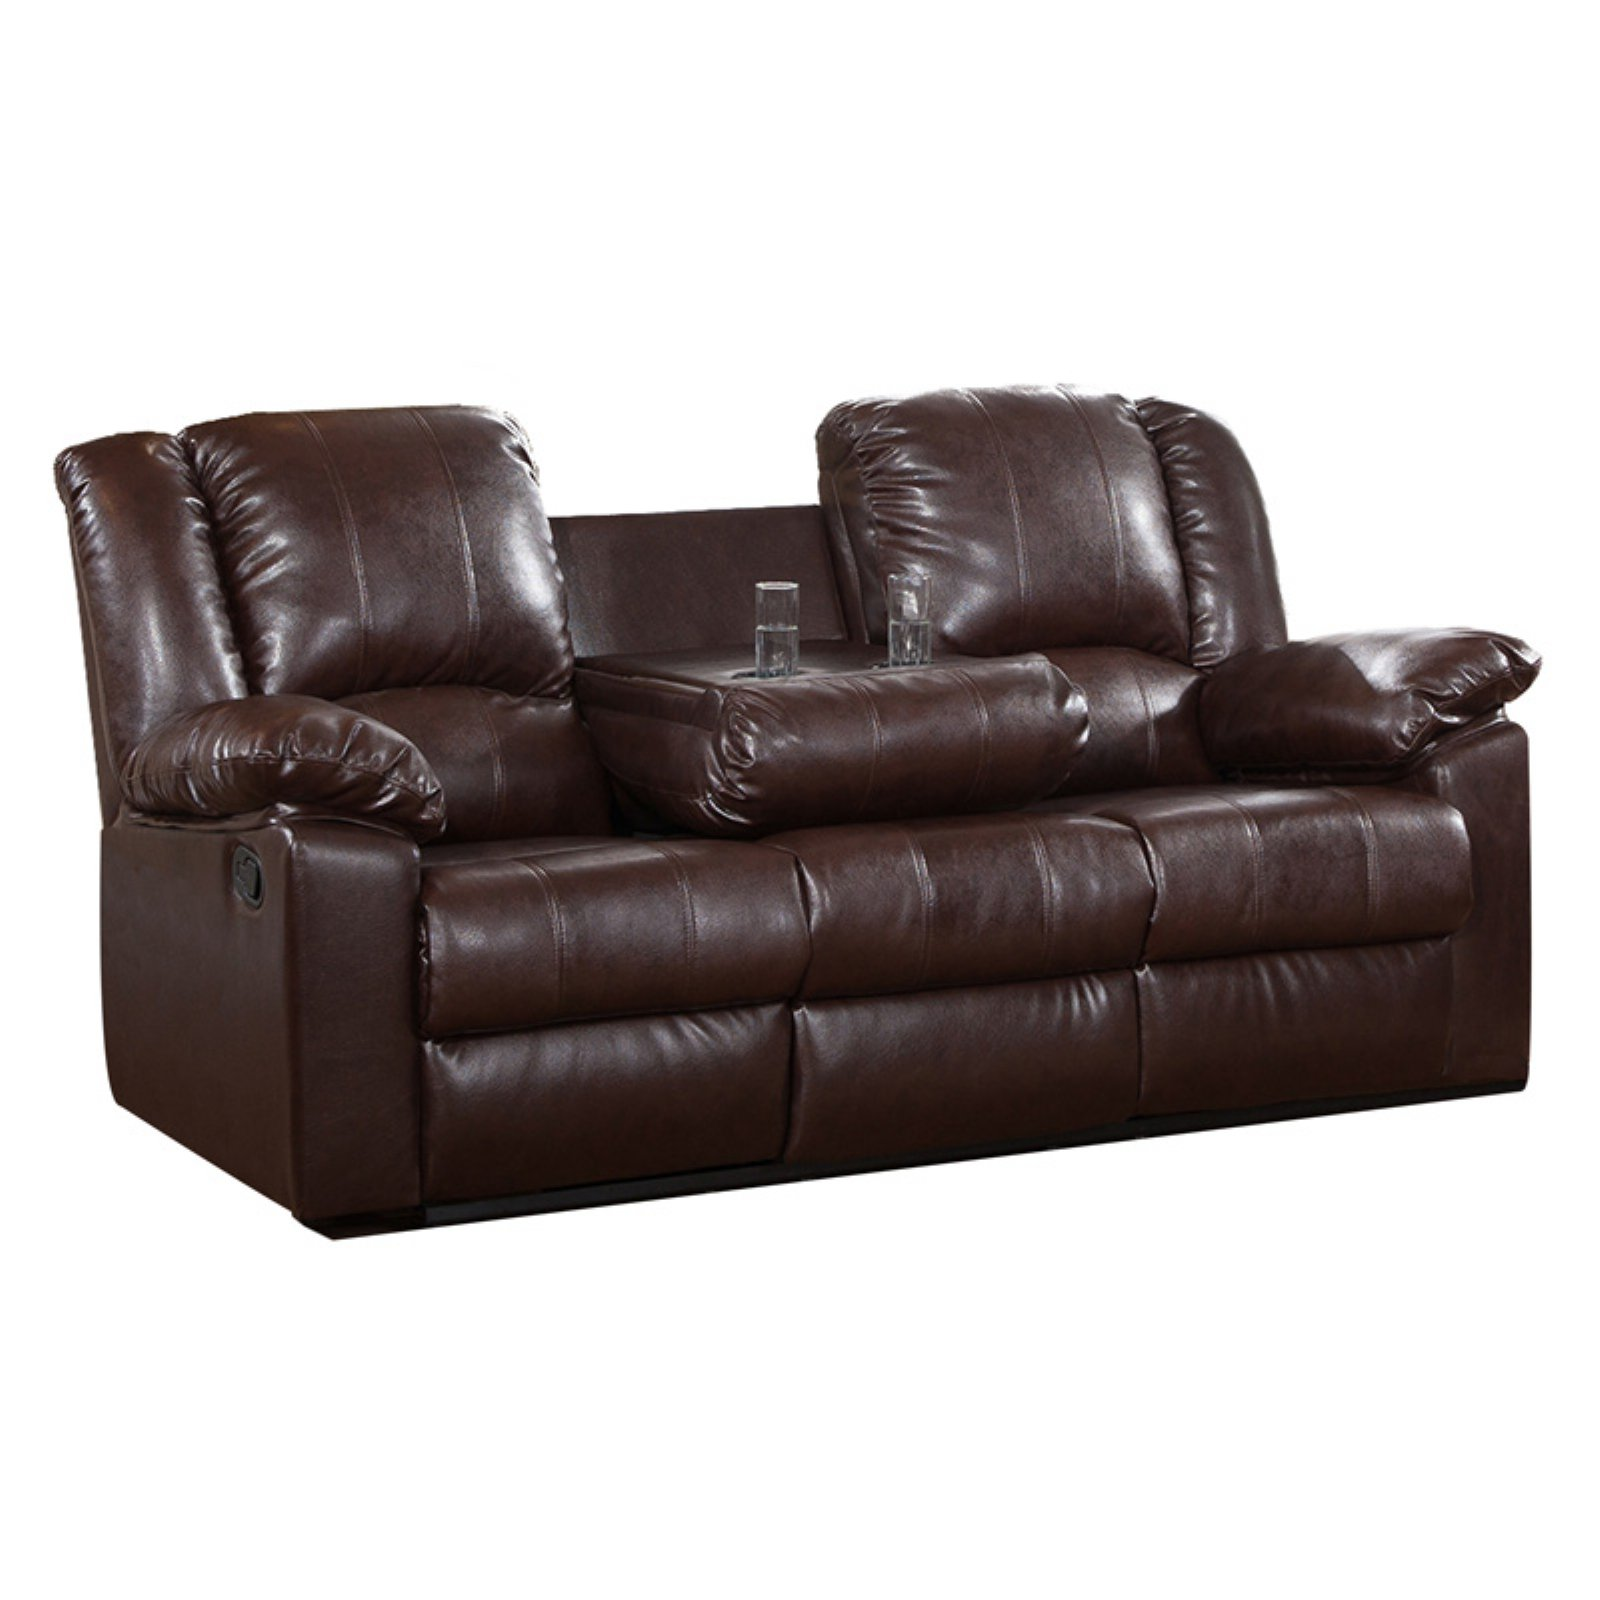 Burgas Reclining Sofa With Drop Down Cup Holder Walmartcom